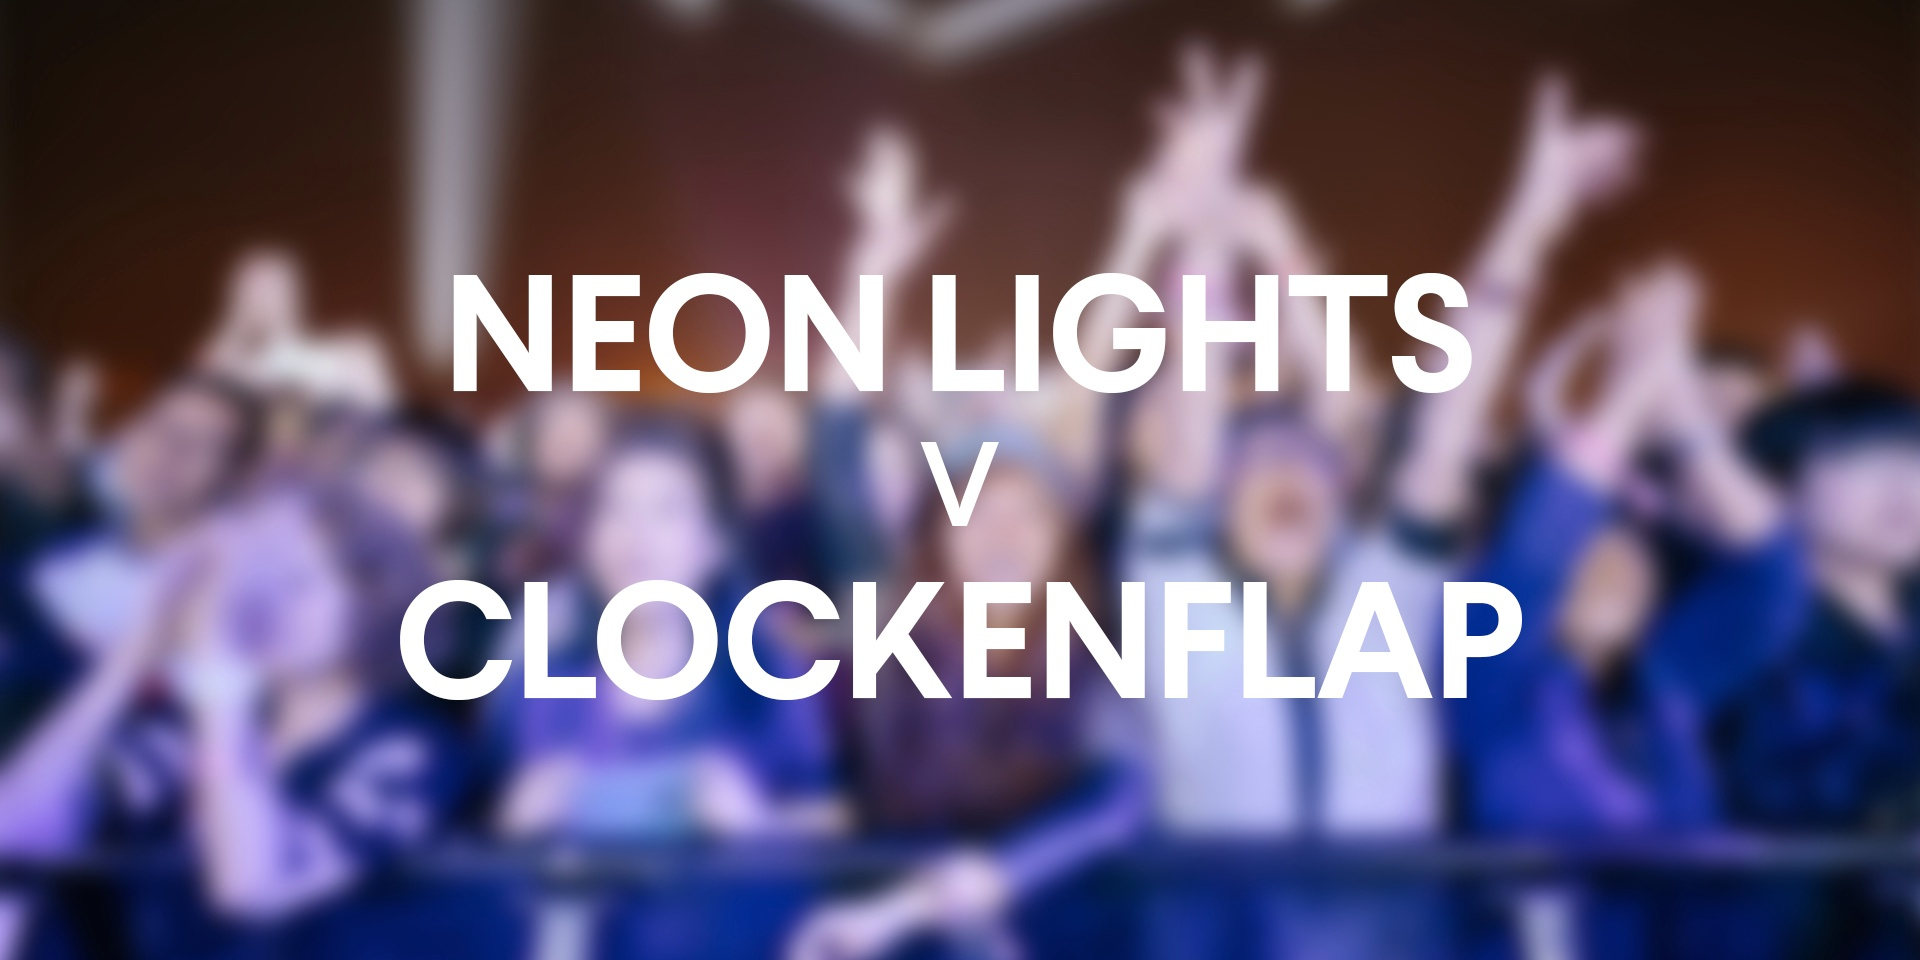 Festival Showdown: Neon Lights vs Clockenflap